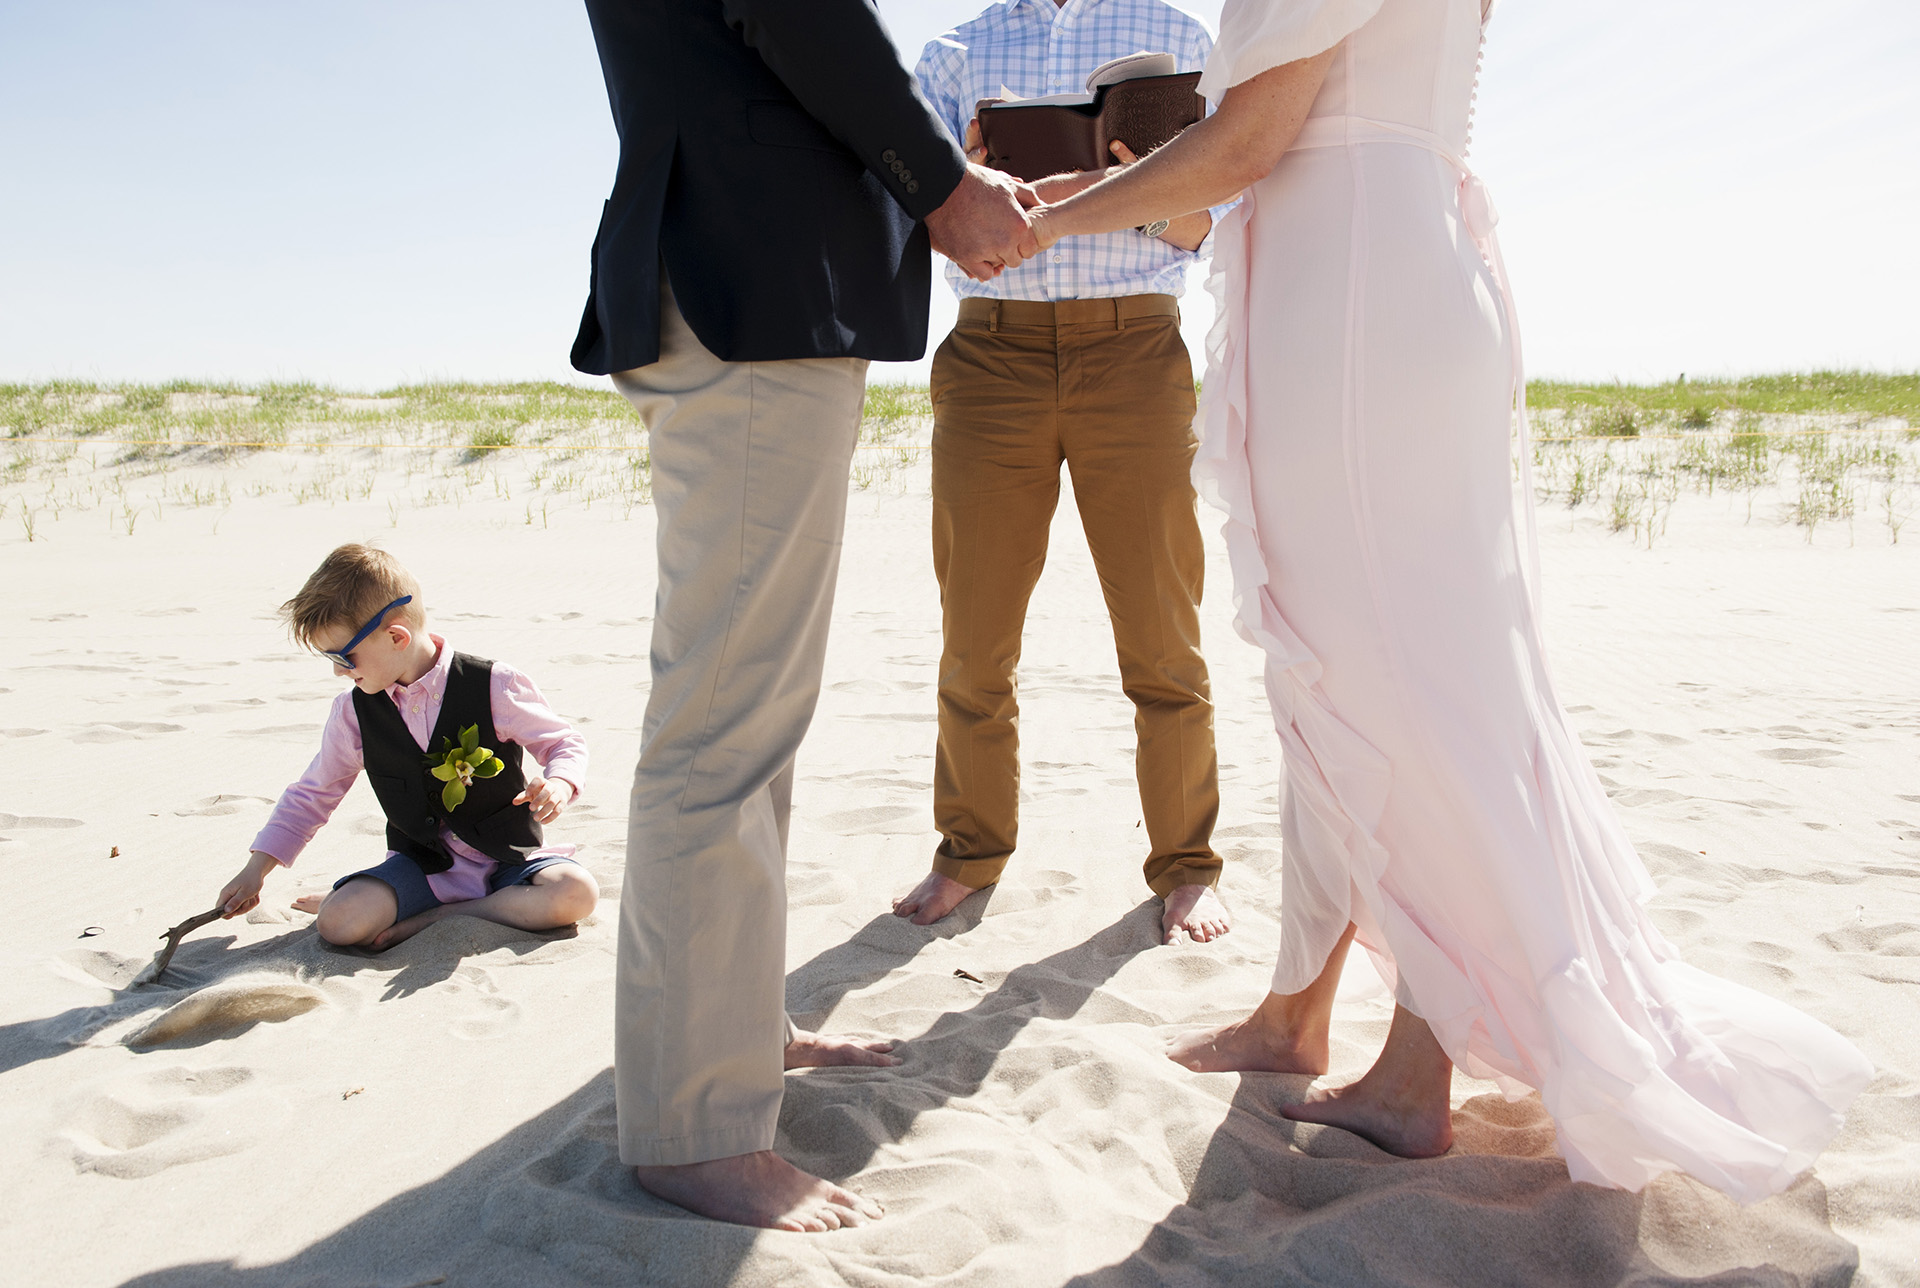 Ipswich, MA Beach Wedding Ceremony Pictures   The ceremony, with the bride's youngest son playing in the sand